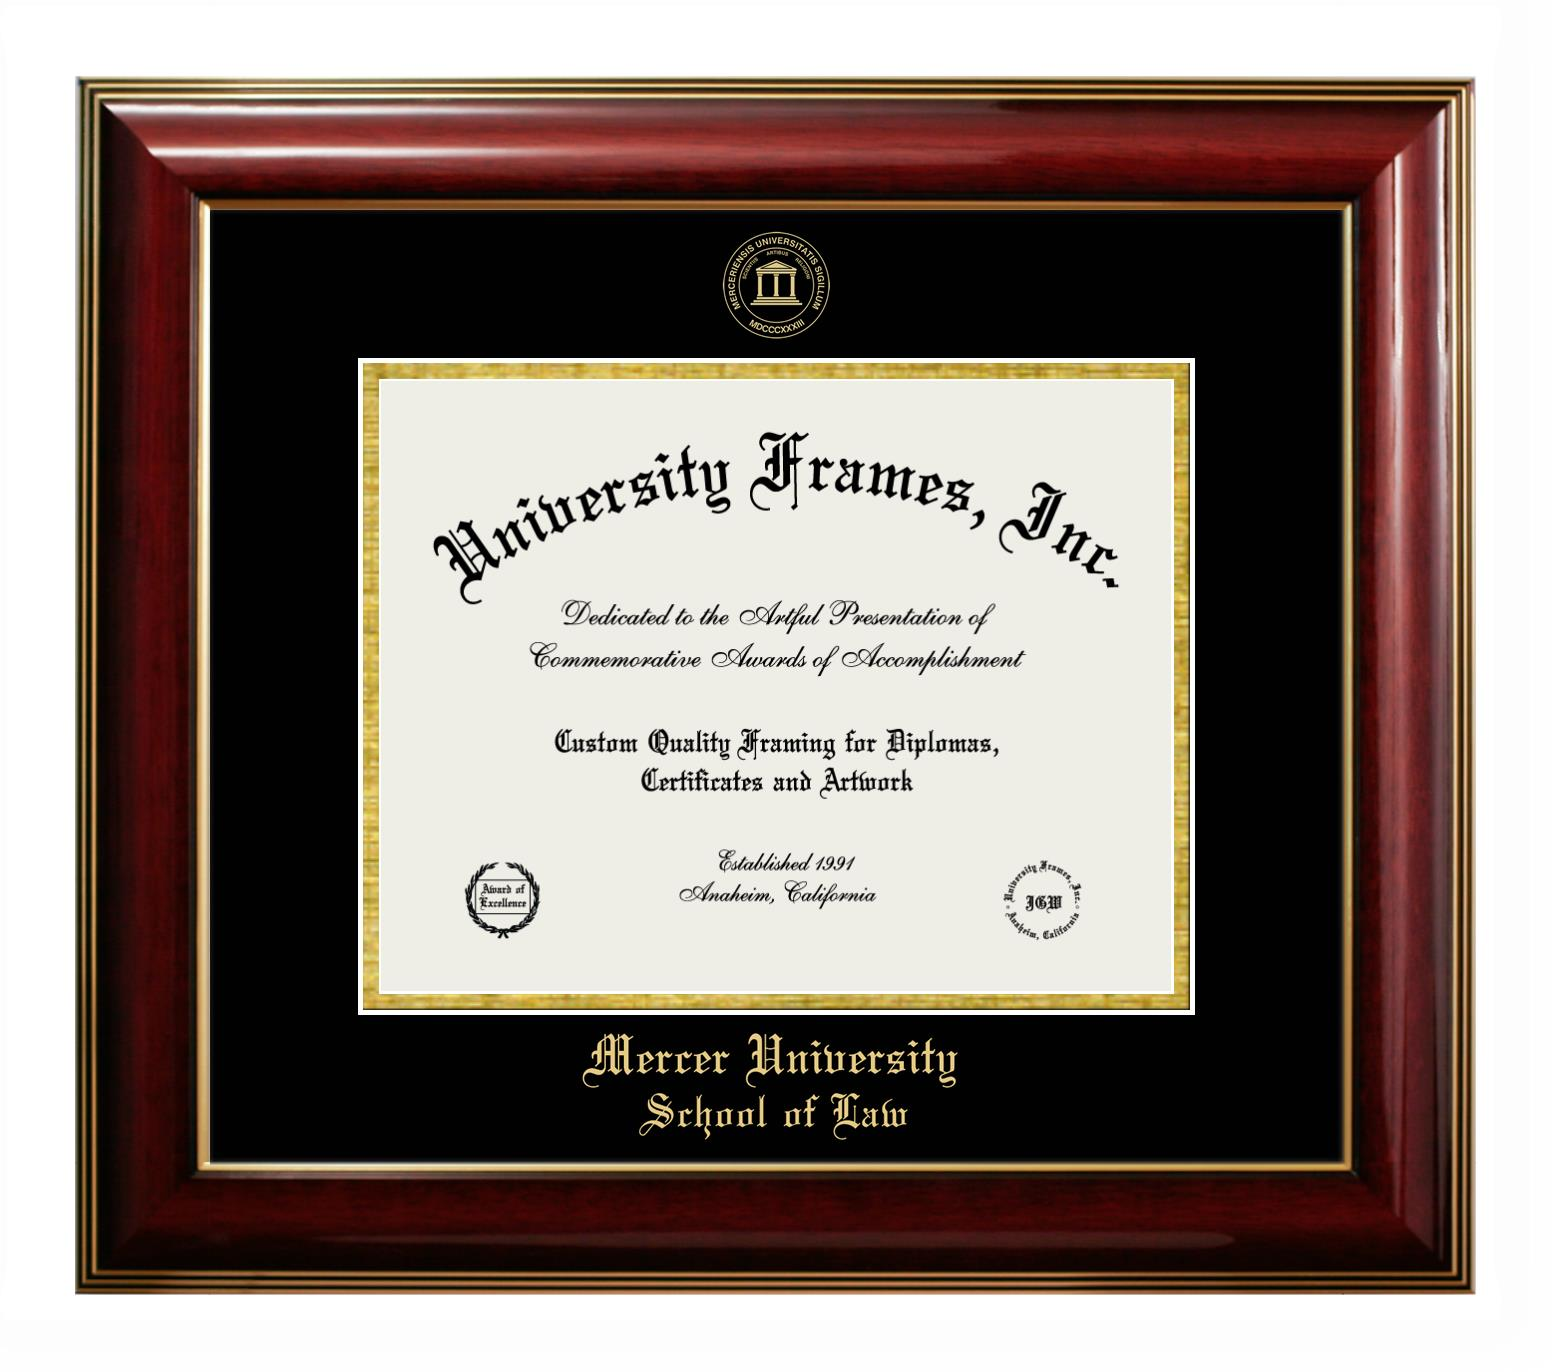 Mercer University School Of Law Diploma Frame In Legacy Black Cherry With Black Gold Mats